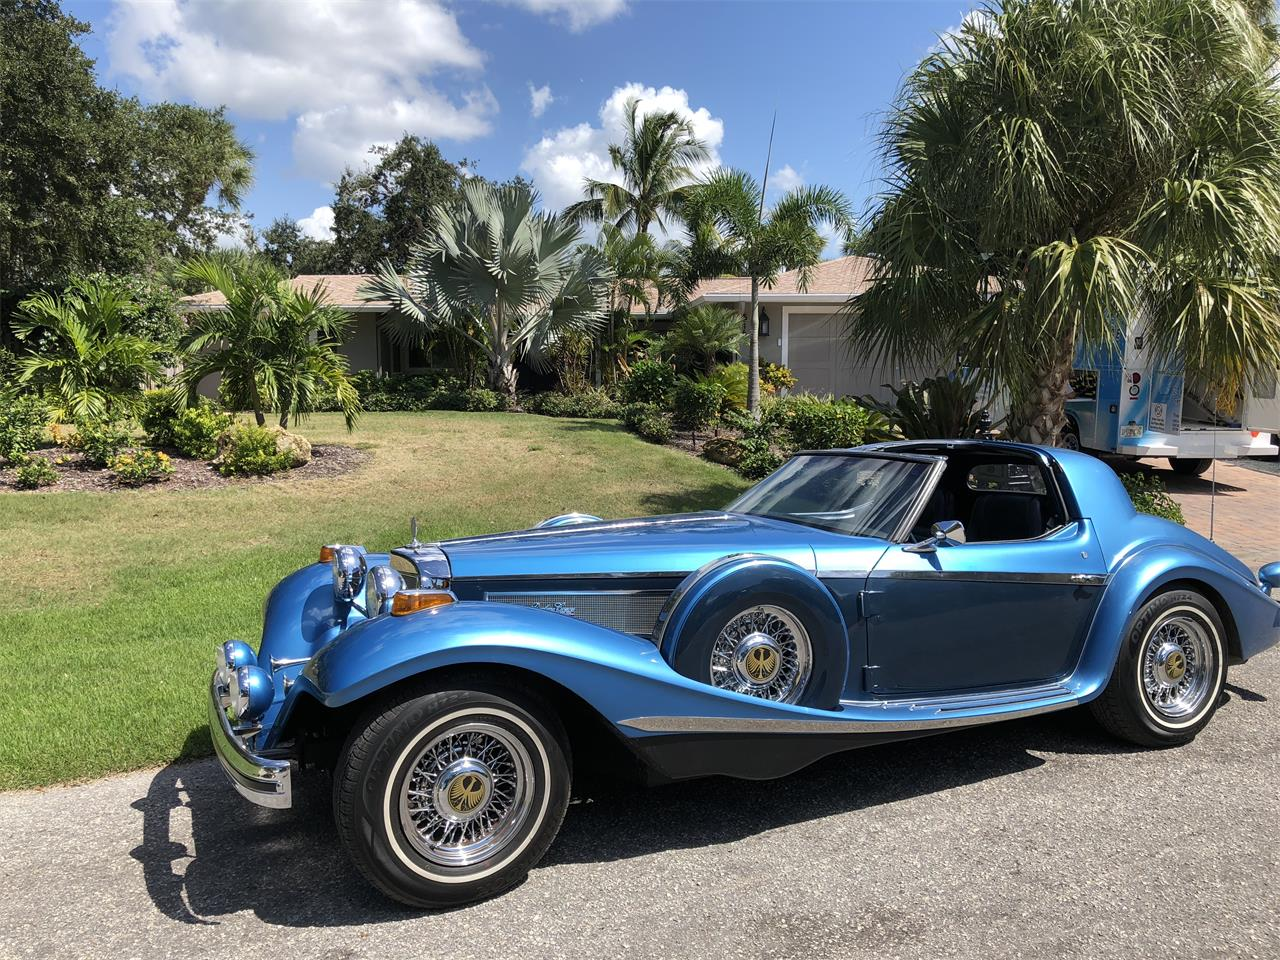 1981 Phillips Berlina for sale in Sarasota, FL